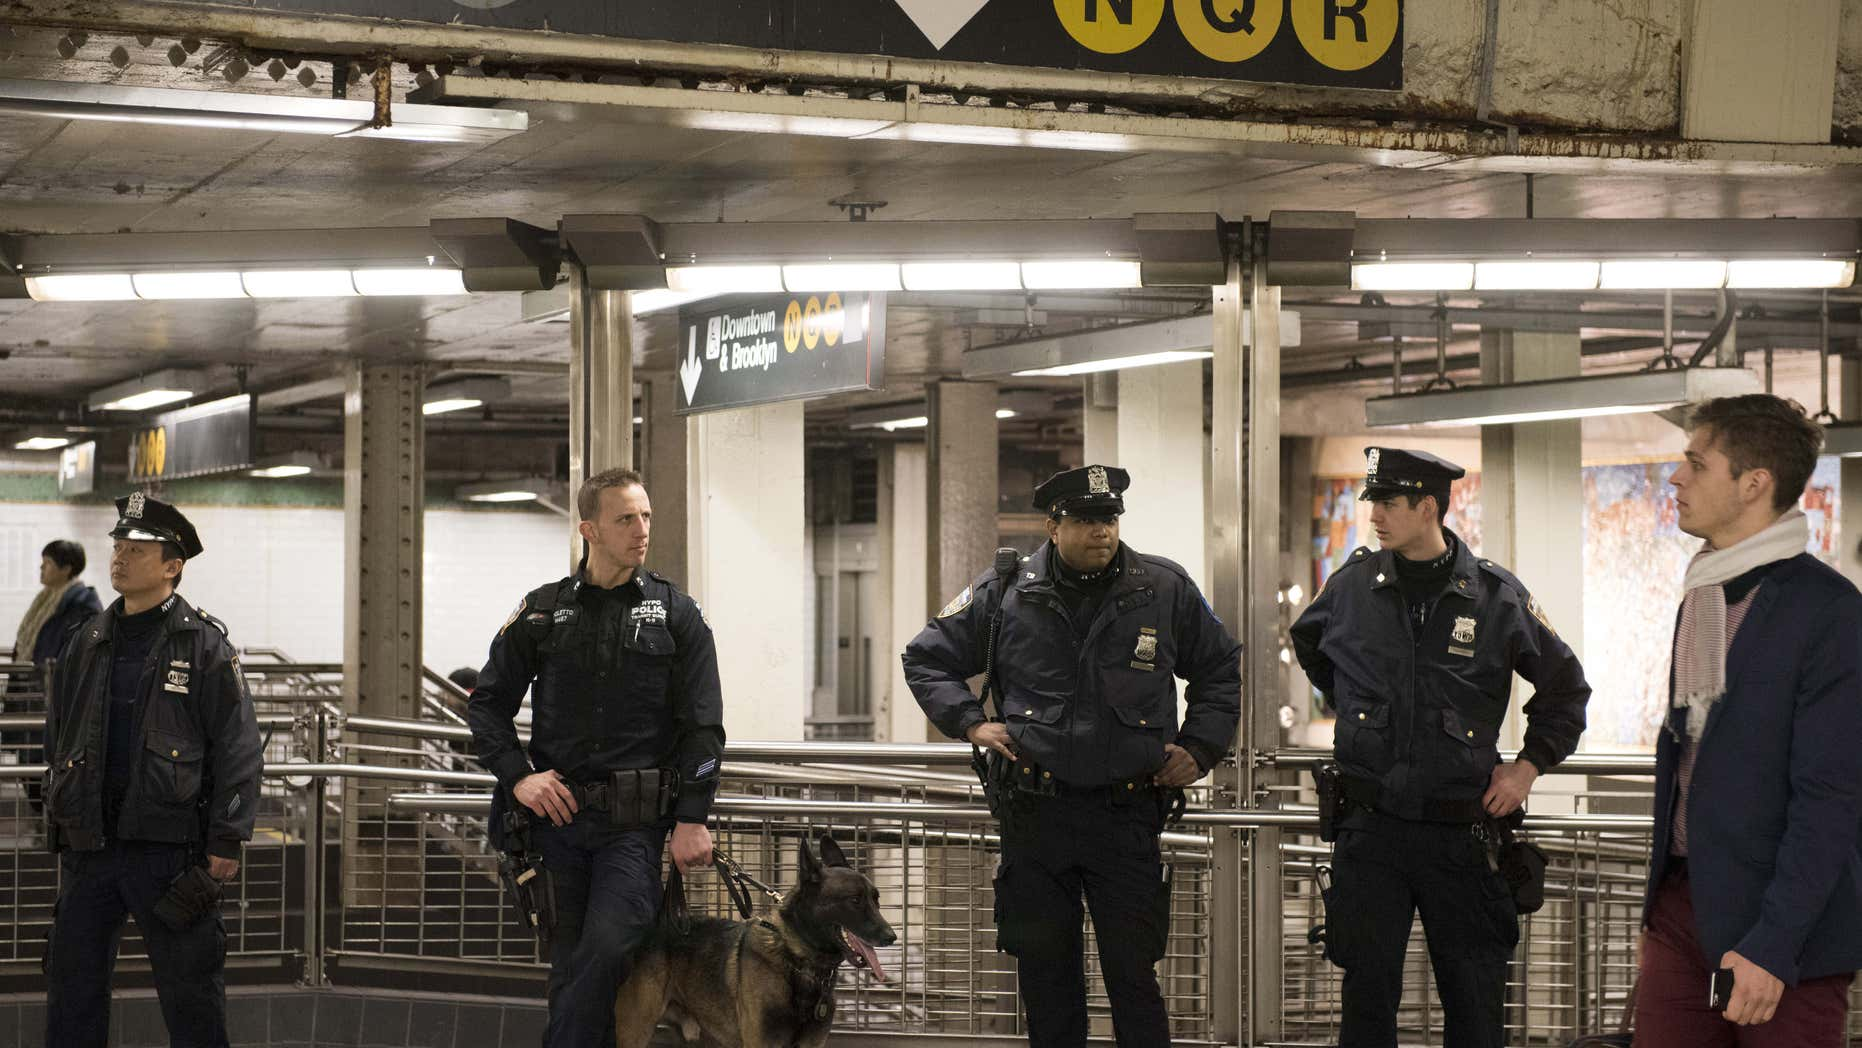 Dec. 31, 2015: New York Police Department officers stand guard inside the Times Square subway station ahead of New Year's Eve celebrations in New York.